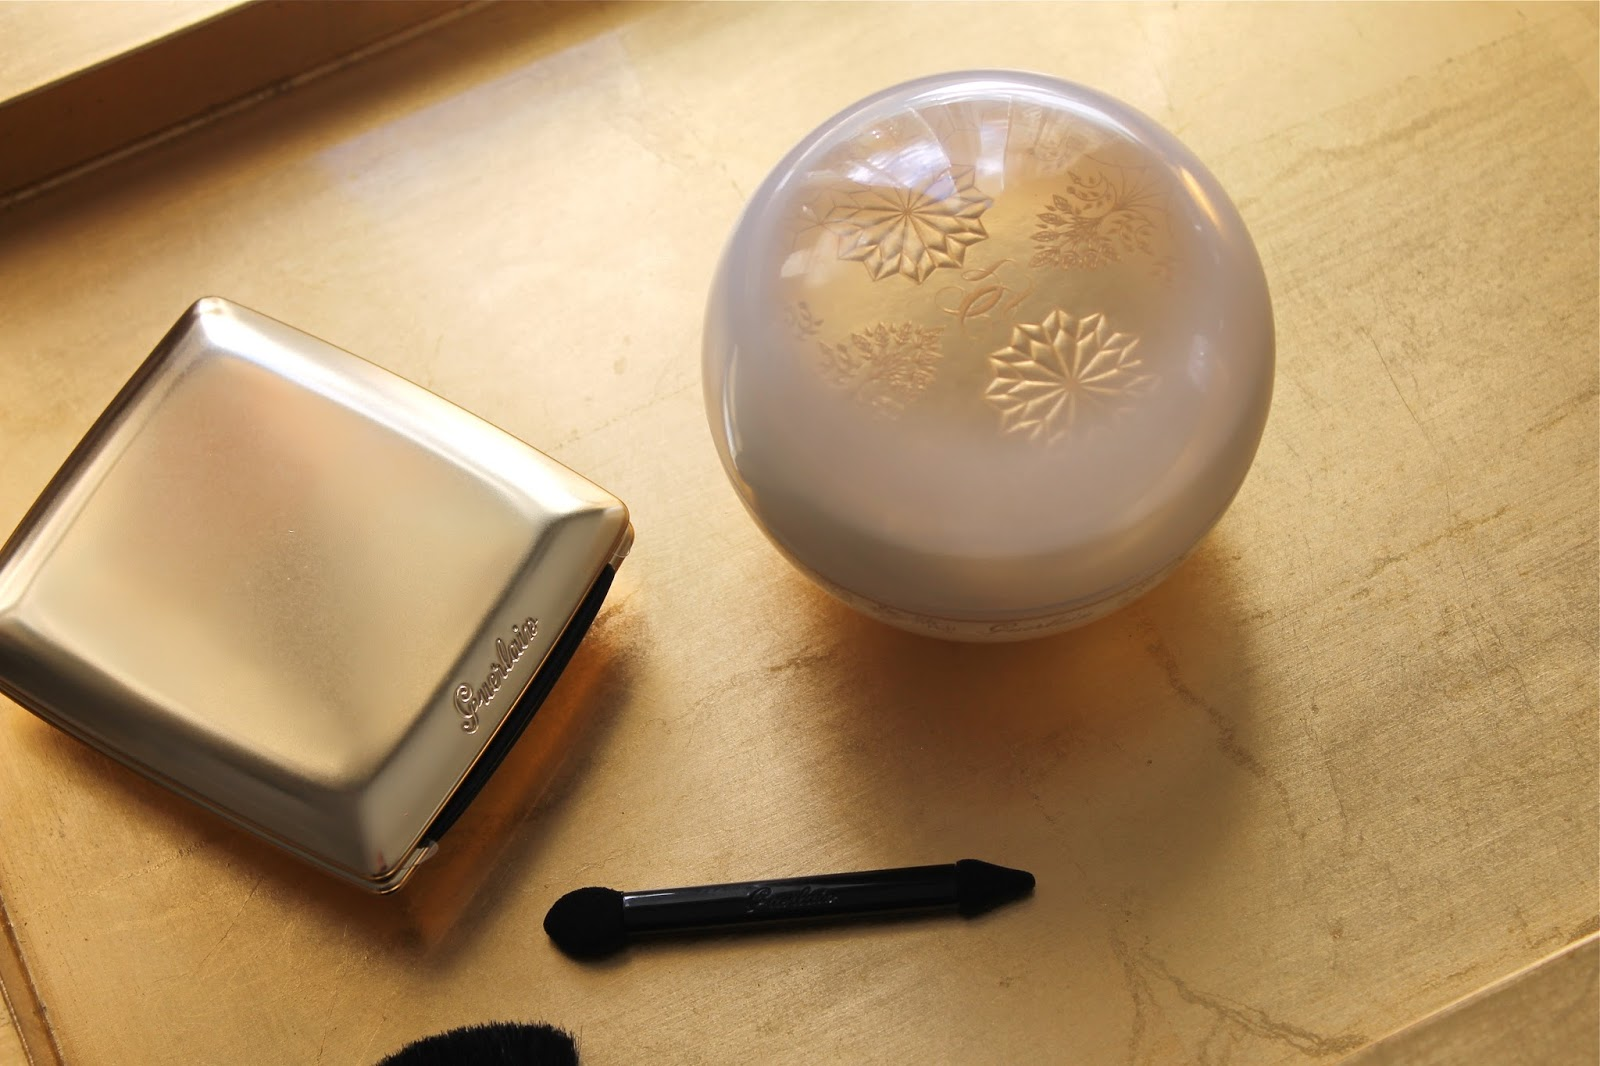 GUERLAIN HOLIDAY COLLECTION 2015: WINTER FAIRY TALE